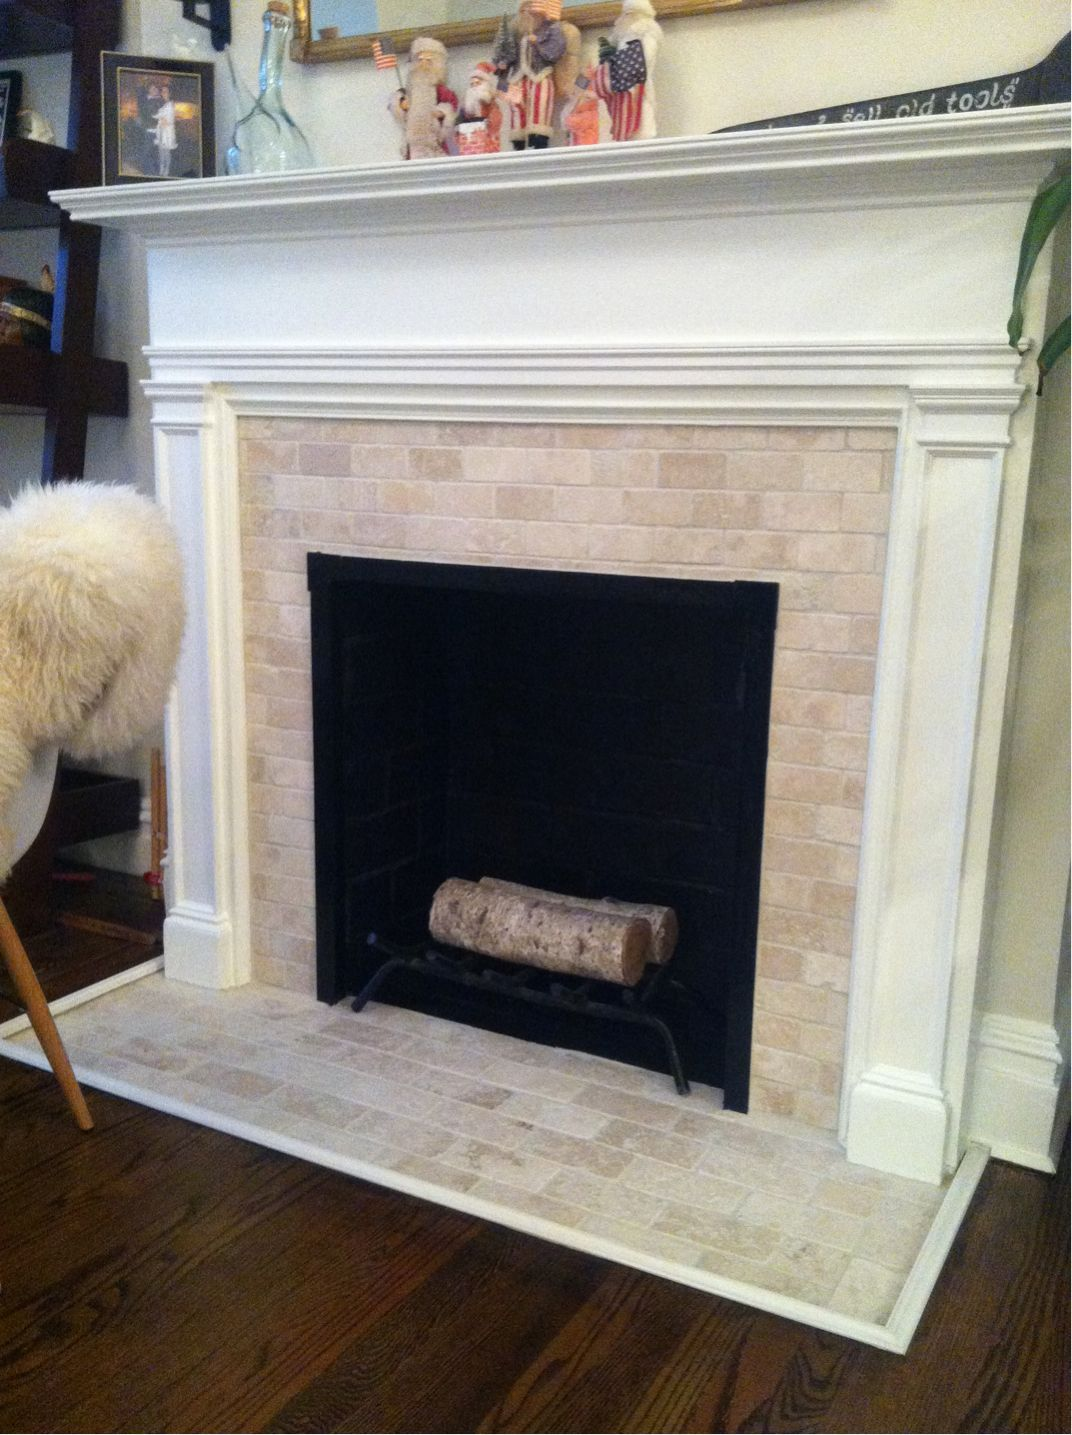 Finito travertine subway tile fireplace thefan our own fan travertine subway tile fireplace thefan doublecrazyfo Choice Image